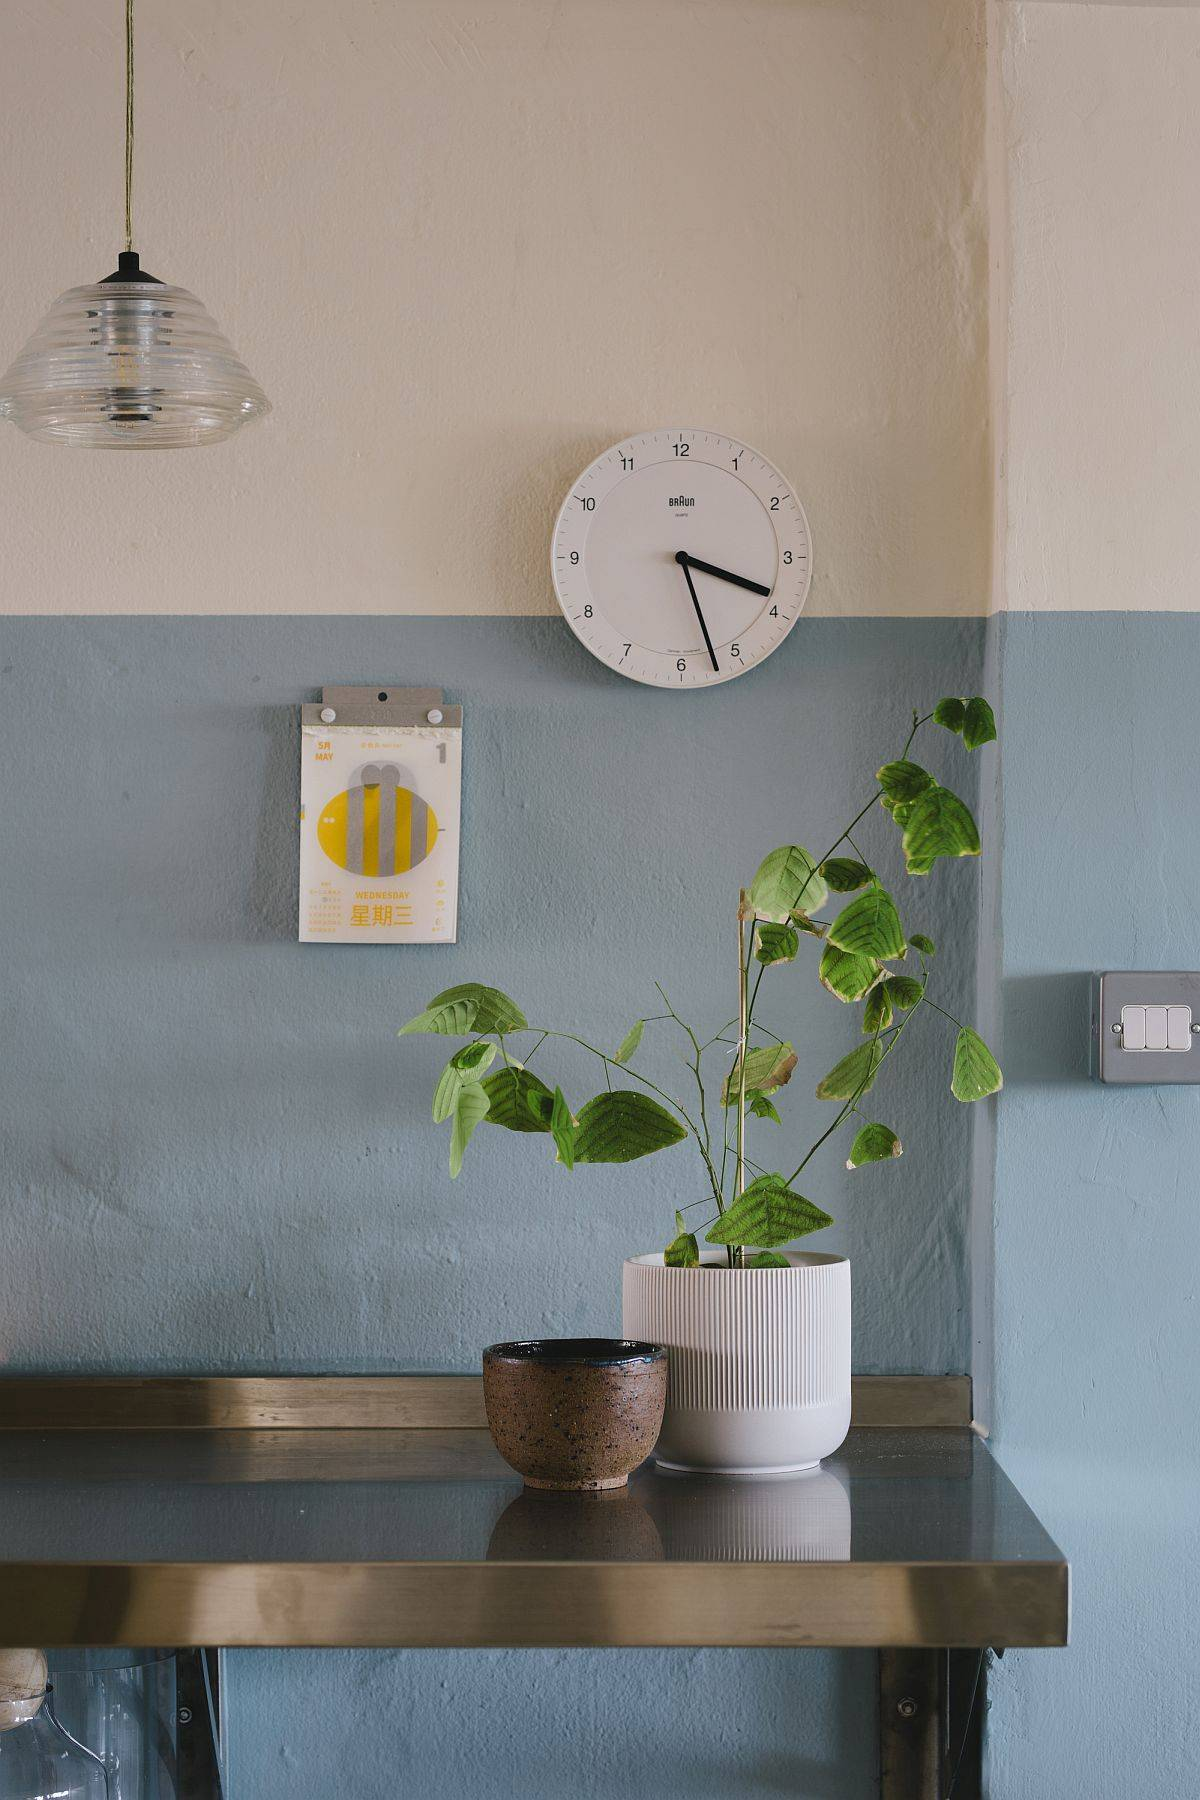 Blue-and-white-walls-give-the-apartment-a-glowing-relaxing-appeal-48455